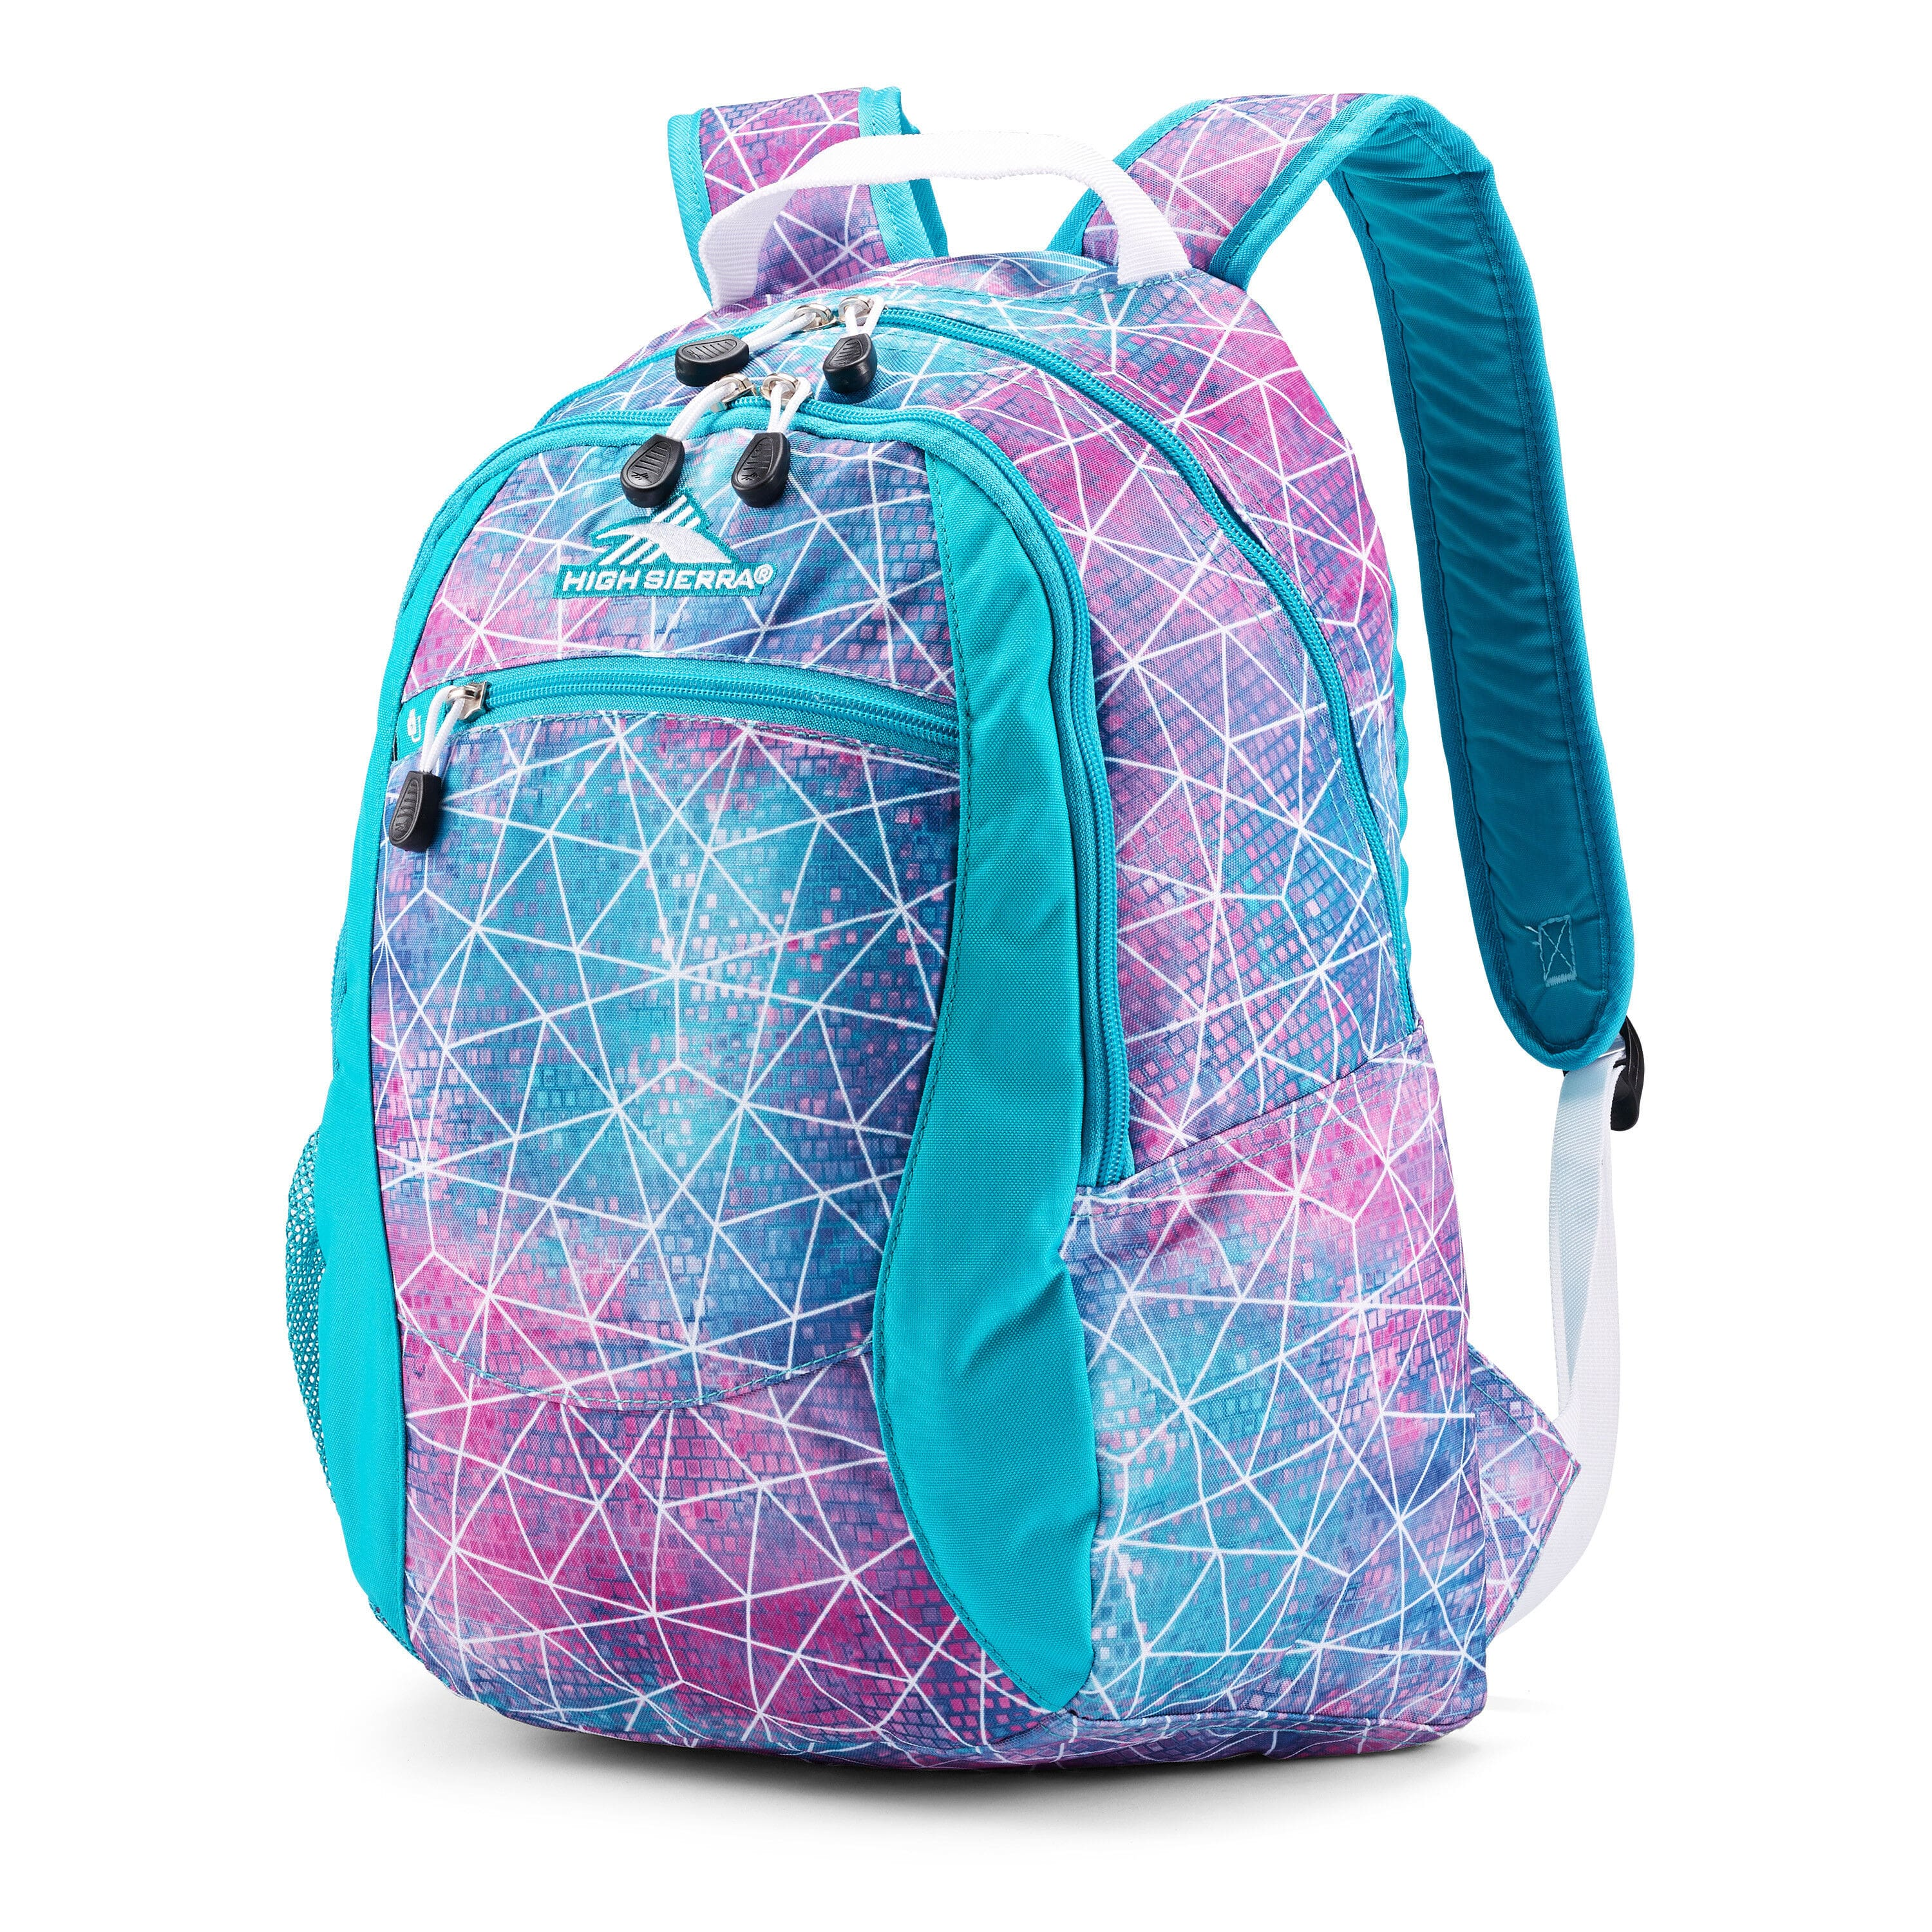 High Sierra: Curve Backpacks 2 for $22.50 ($11.25 each), Fatboy Backpacks 2 for $26.25 ($13.11 each) & More + $4 Shipping or FS on $79+